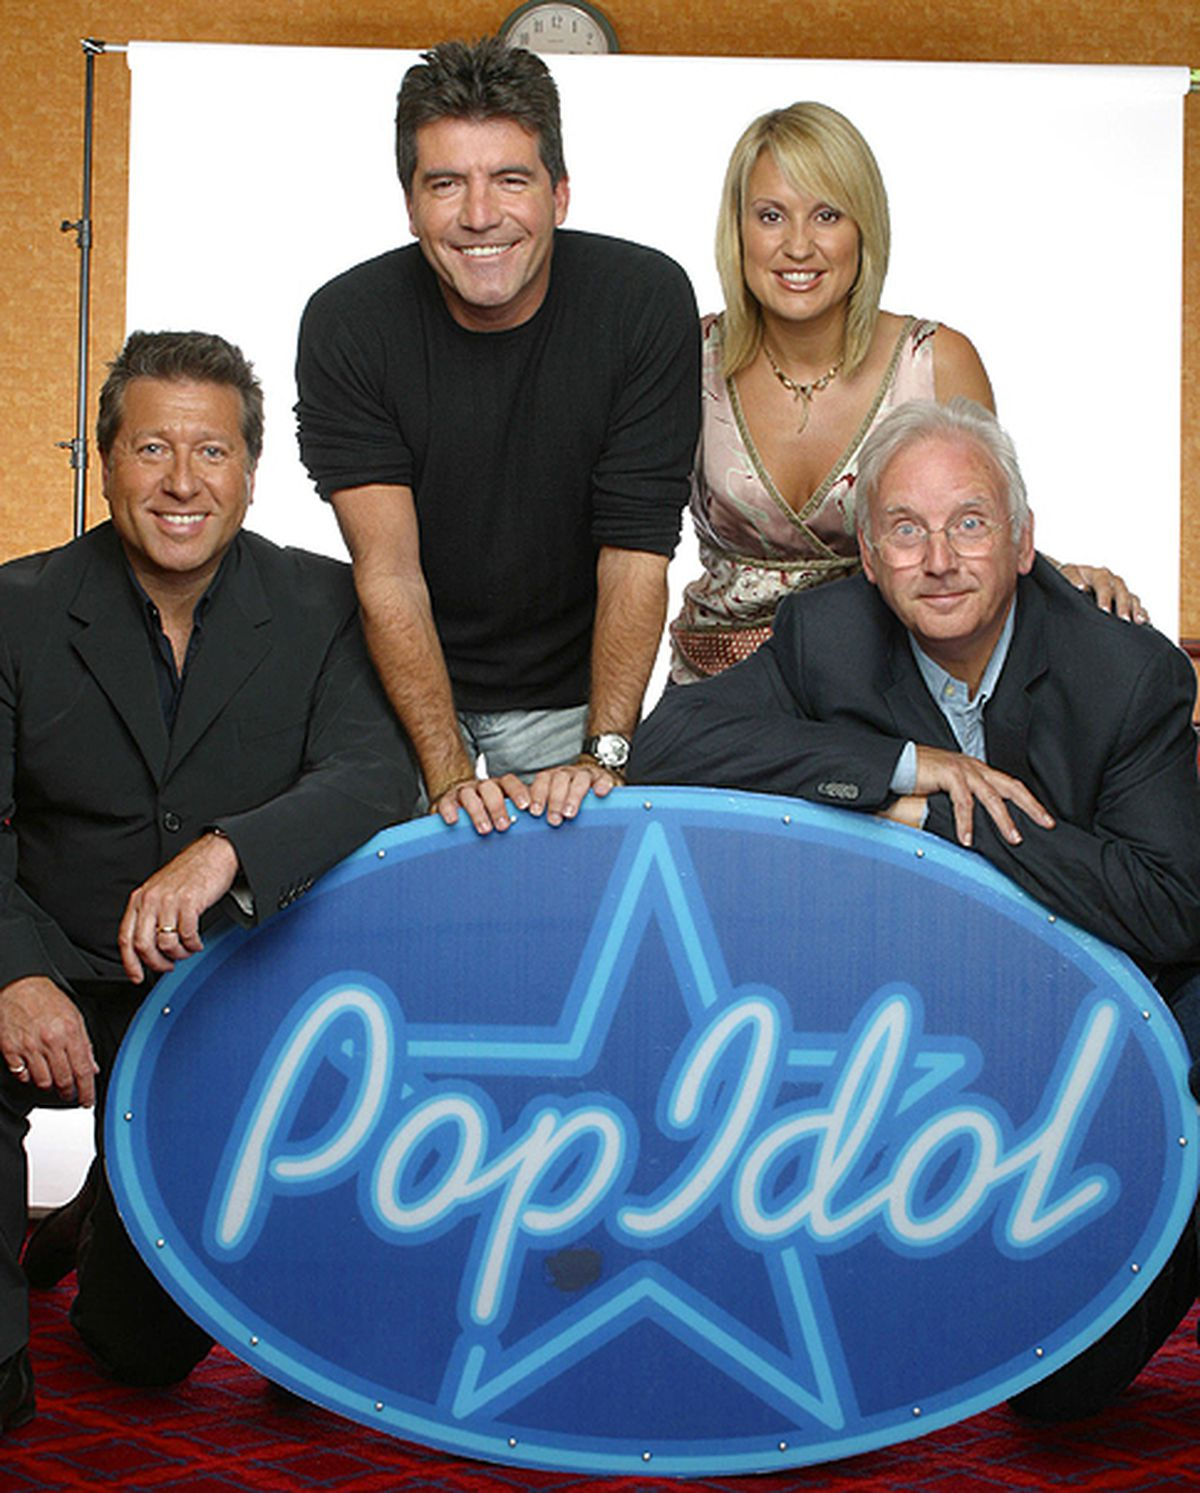 Pete Waterman, Neil Fox, Nicki Chapman and Simon Cowell pose for a picture promoting Pop Idol in 2003